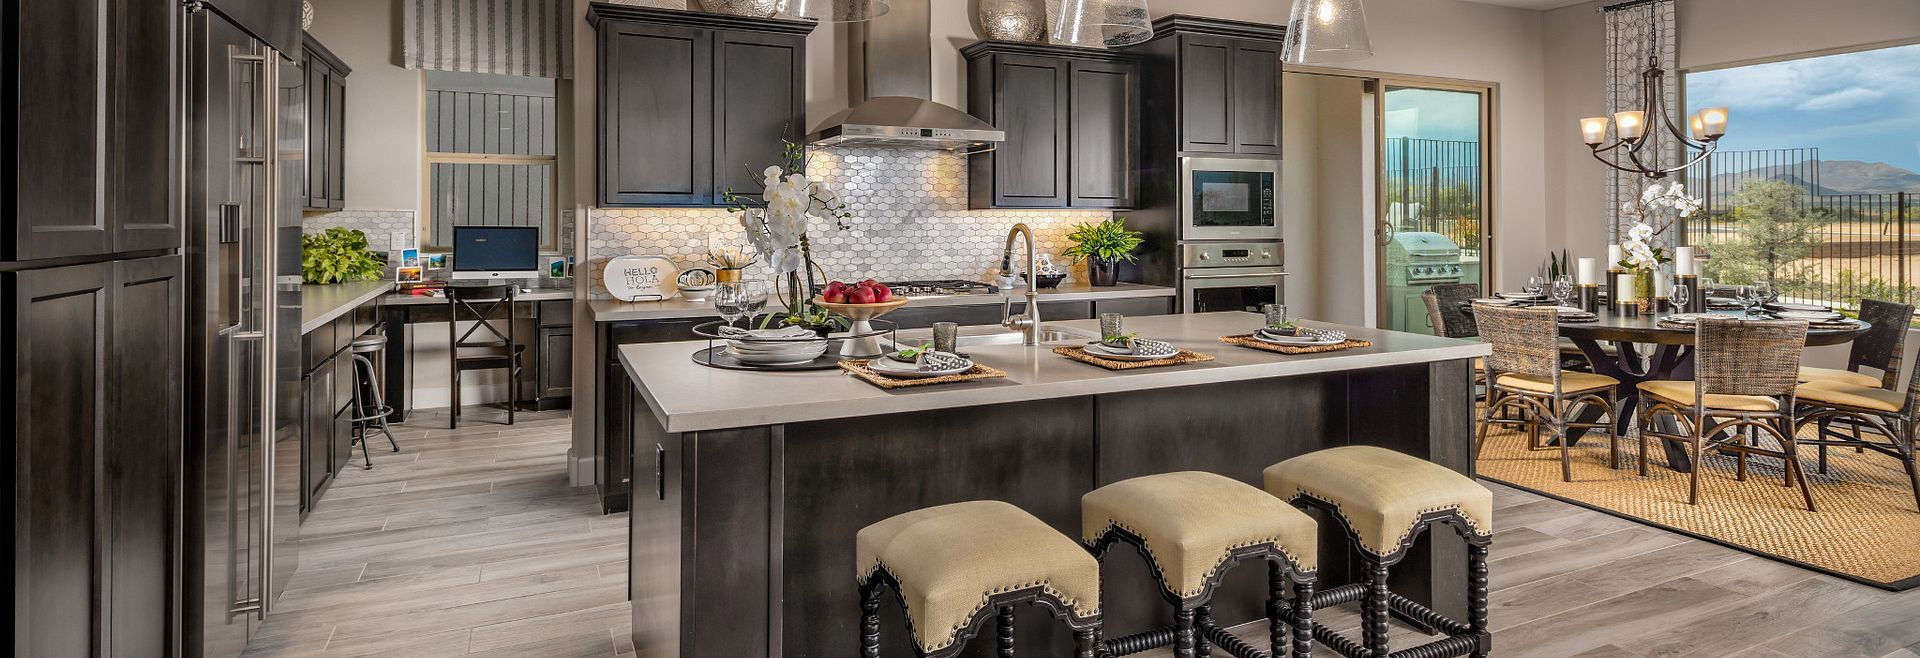 Kitchen featured in the Brasada By Shea Homes - Trilogy in Phoenix-Mesa, AZ